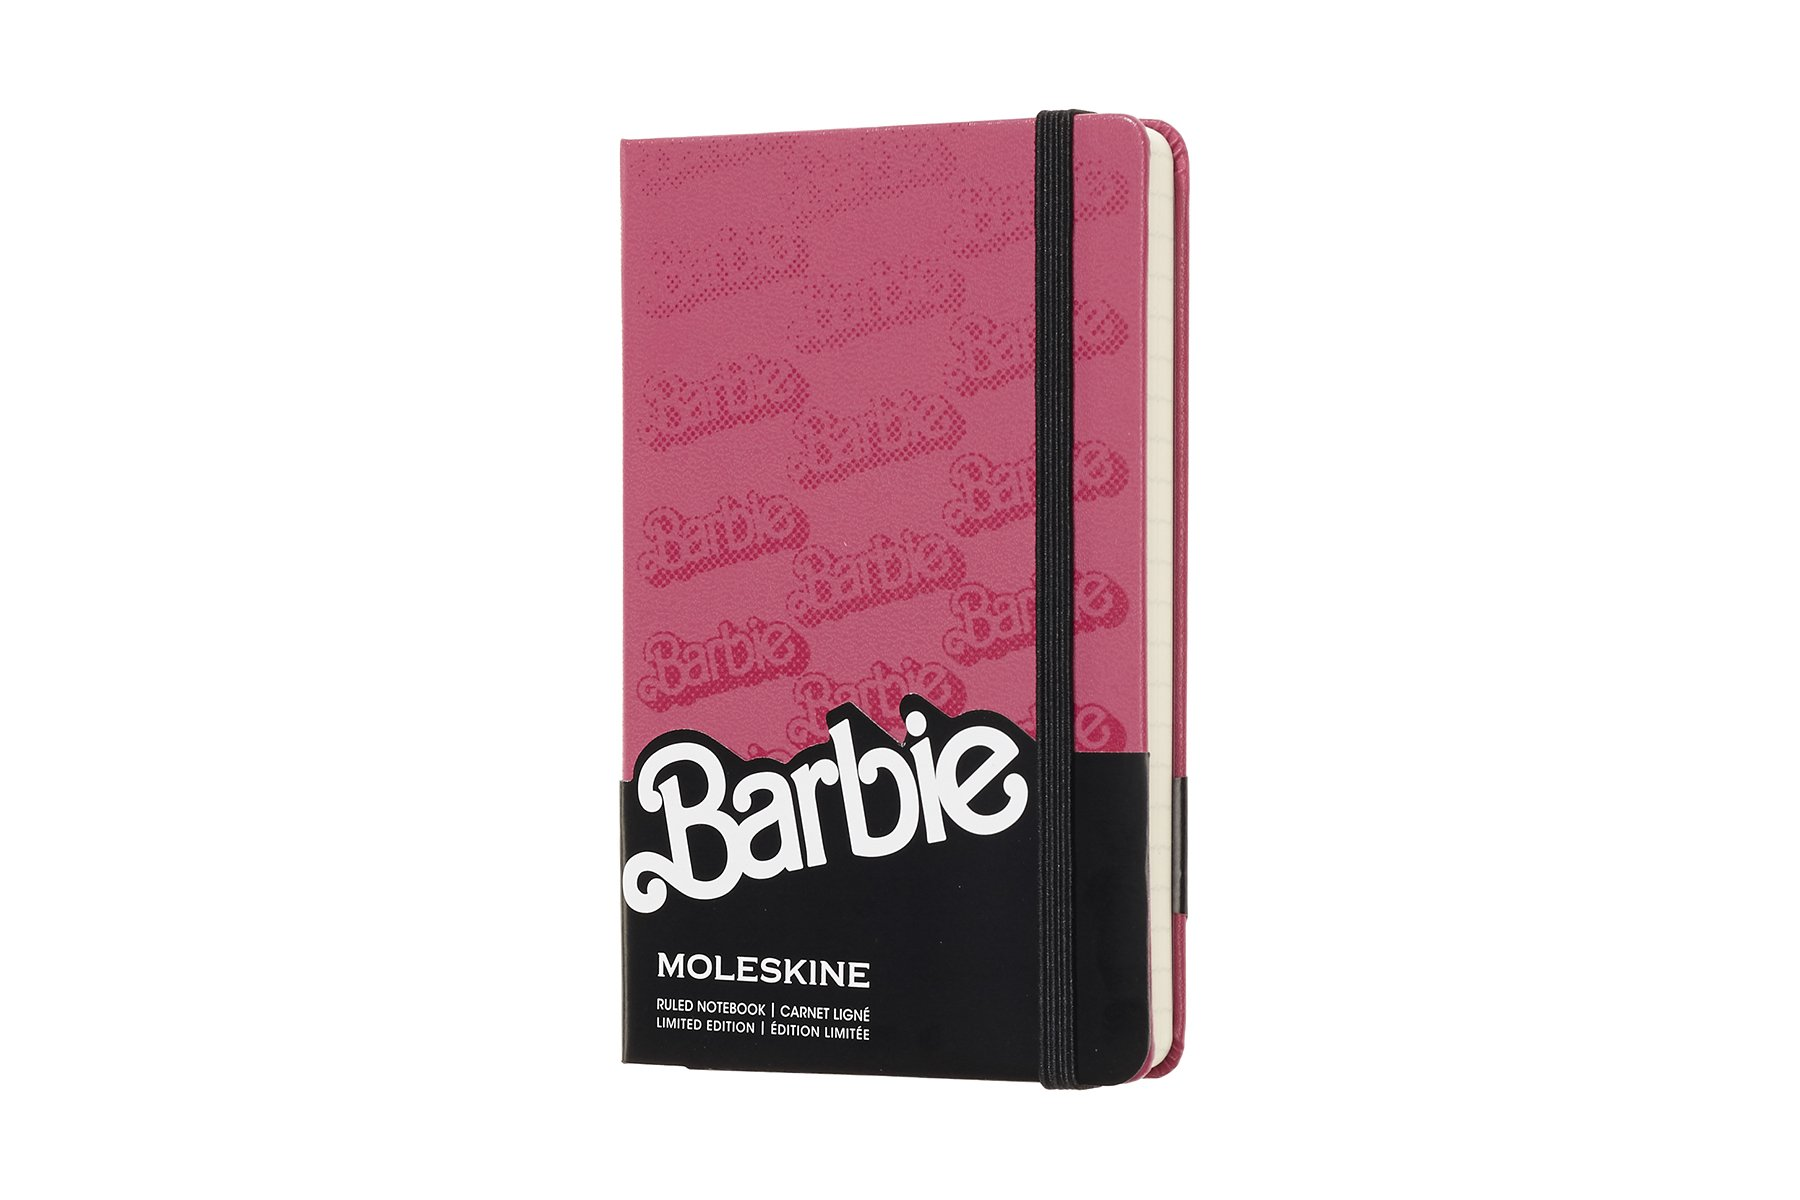 Moleskine Limited Edition Barbie Hard Cover Notebook, Ruled,